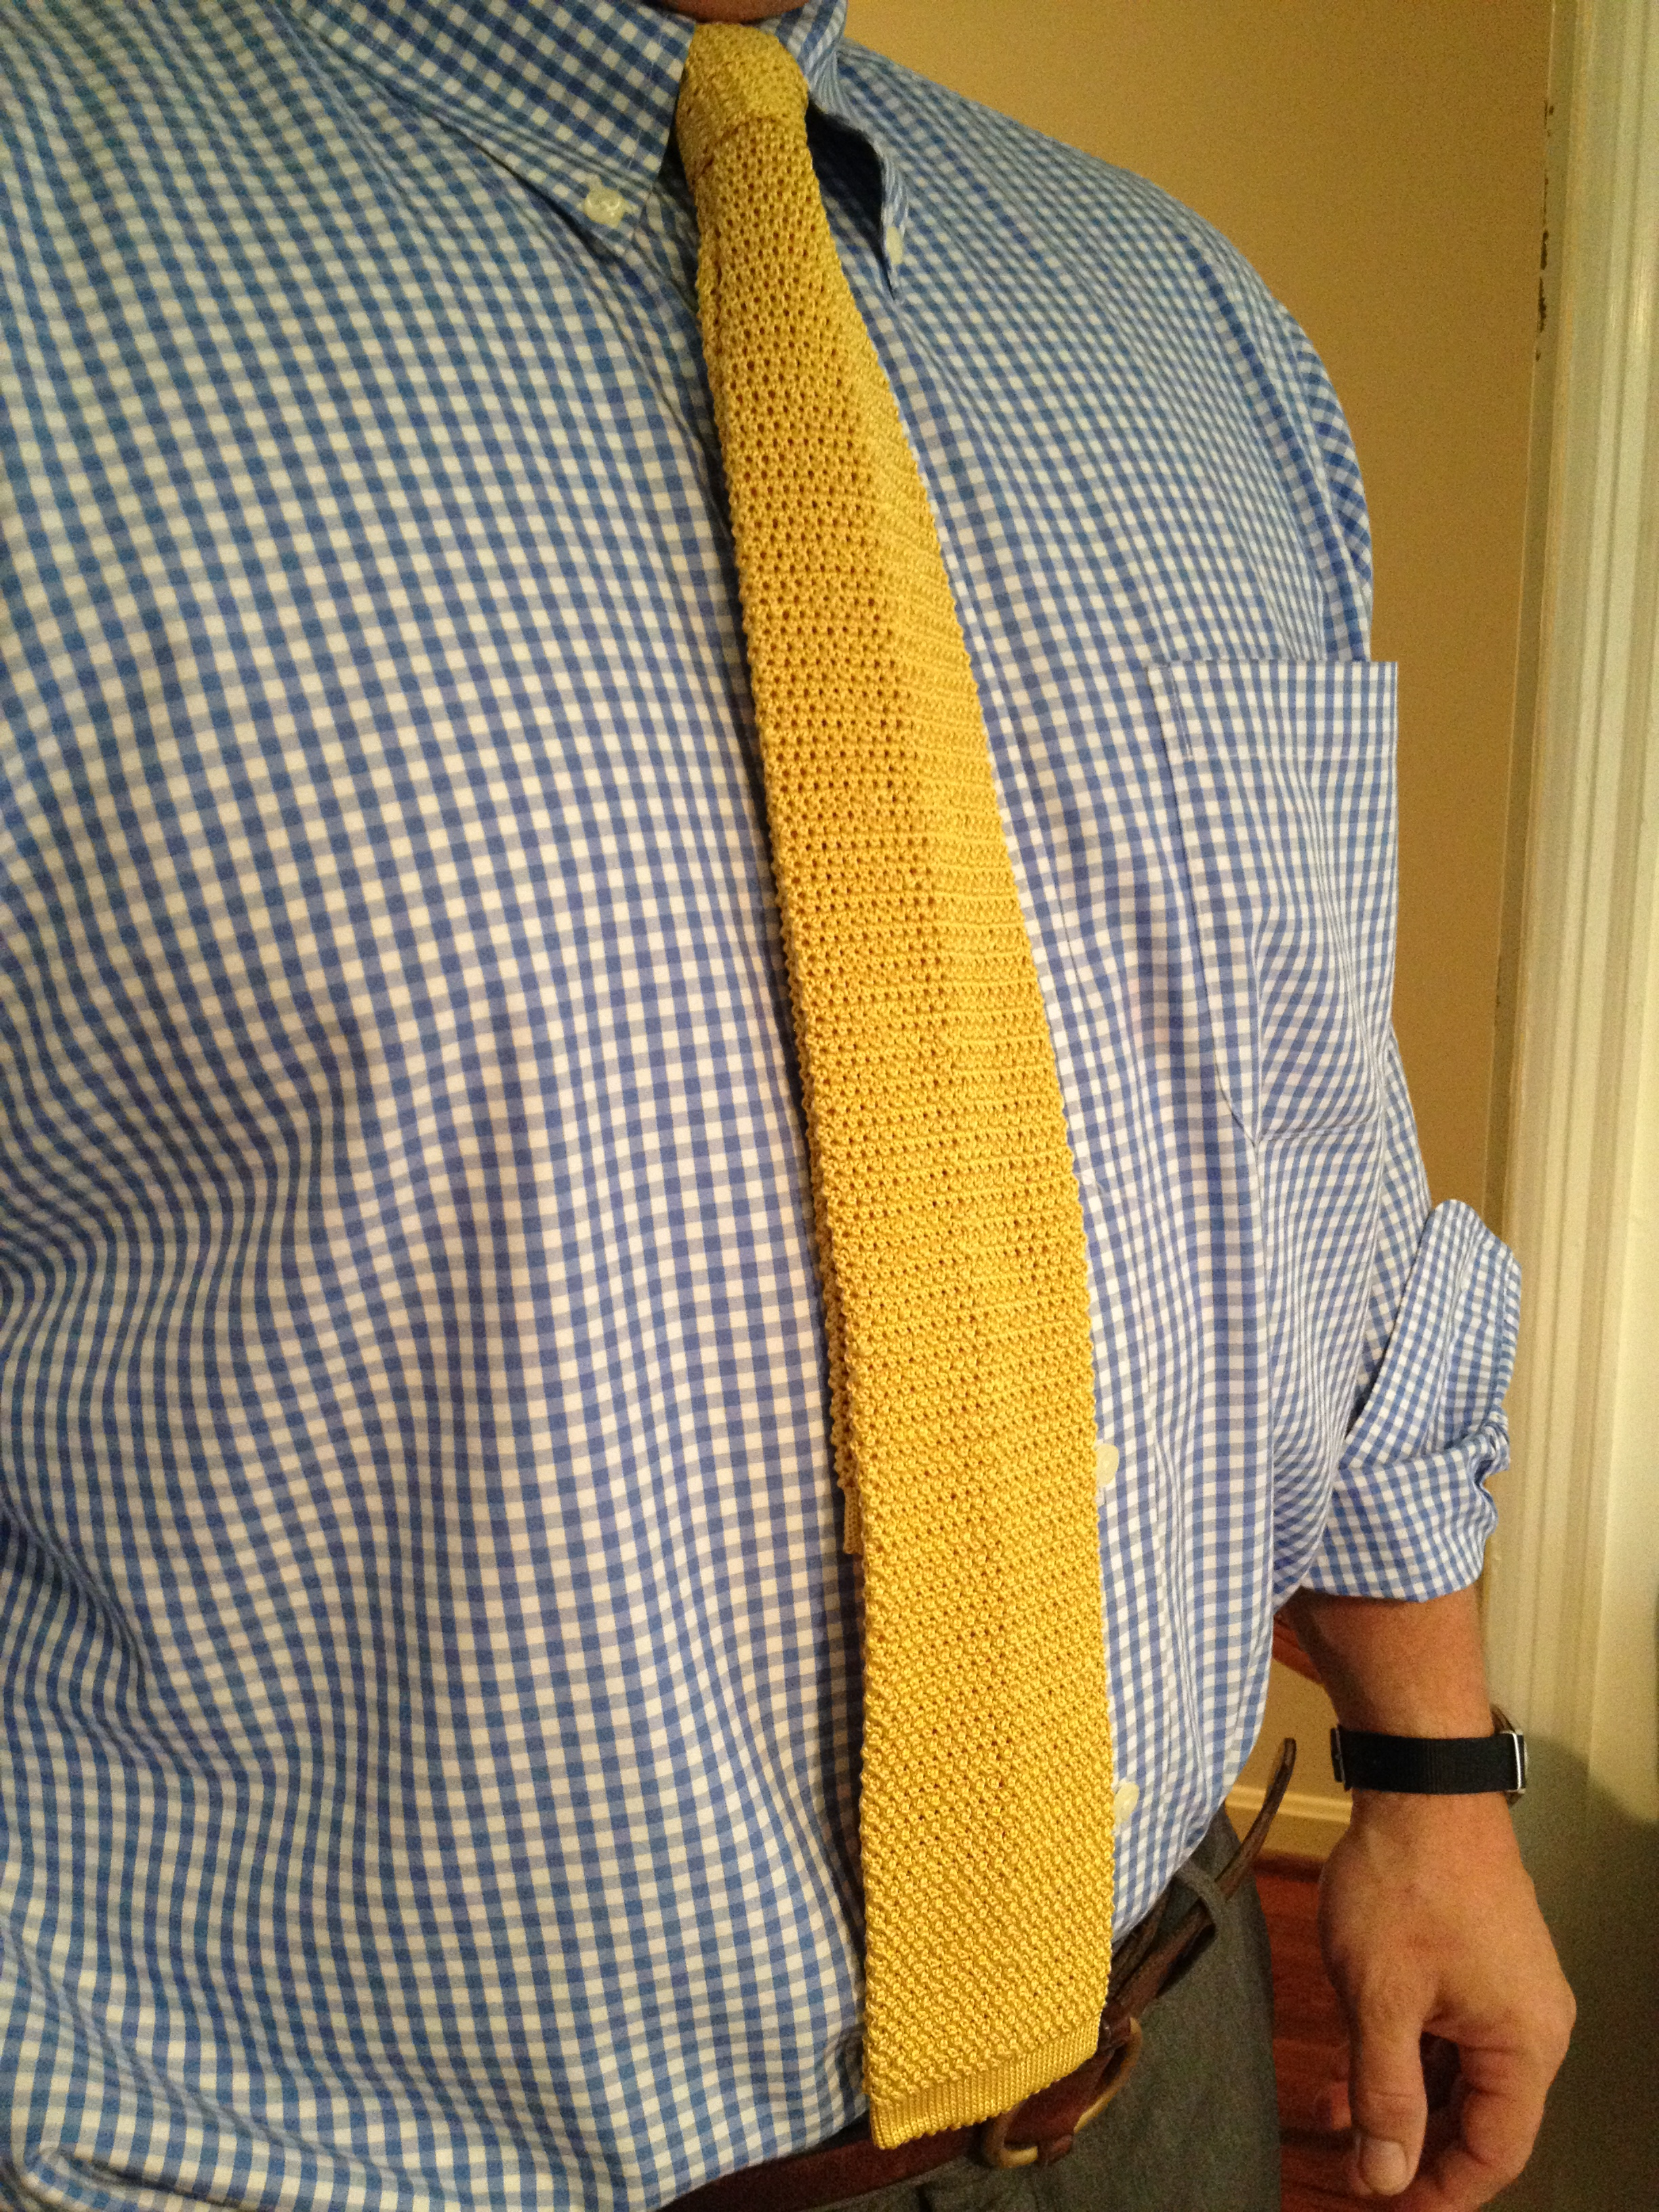 80s knit square-end ties for men - totally tubuler | Like Totally 80s